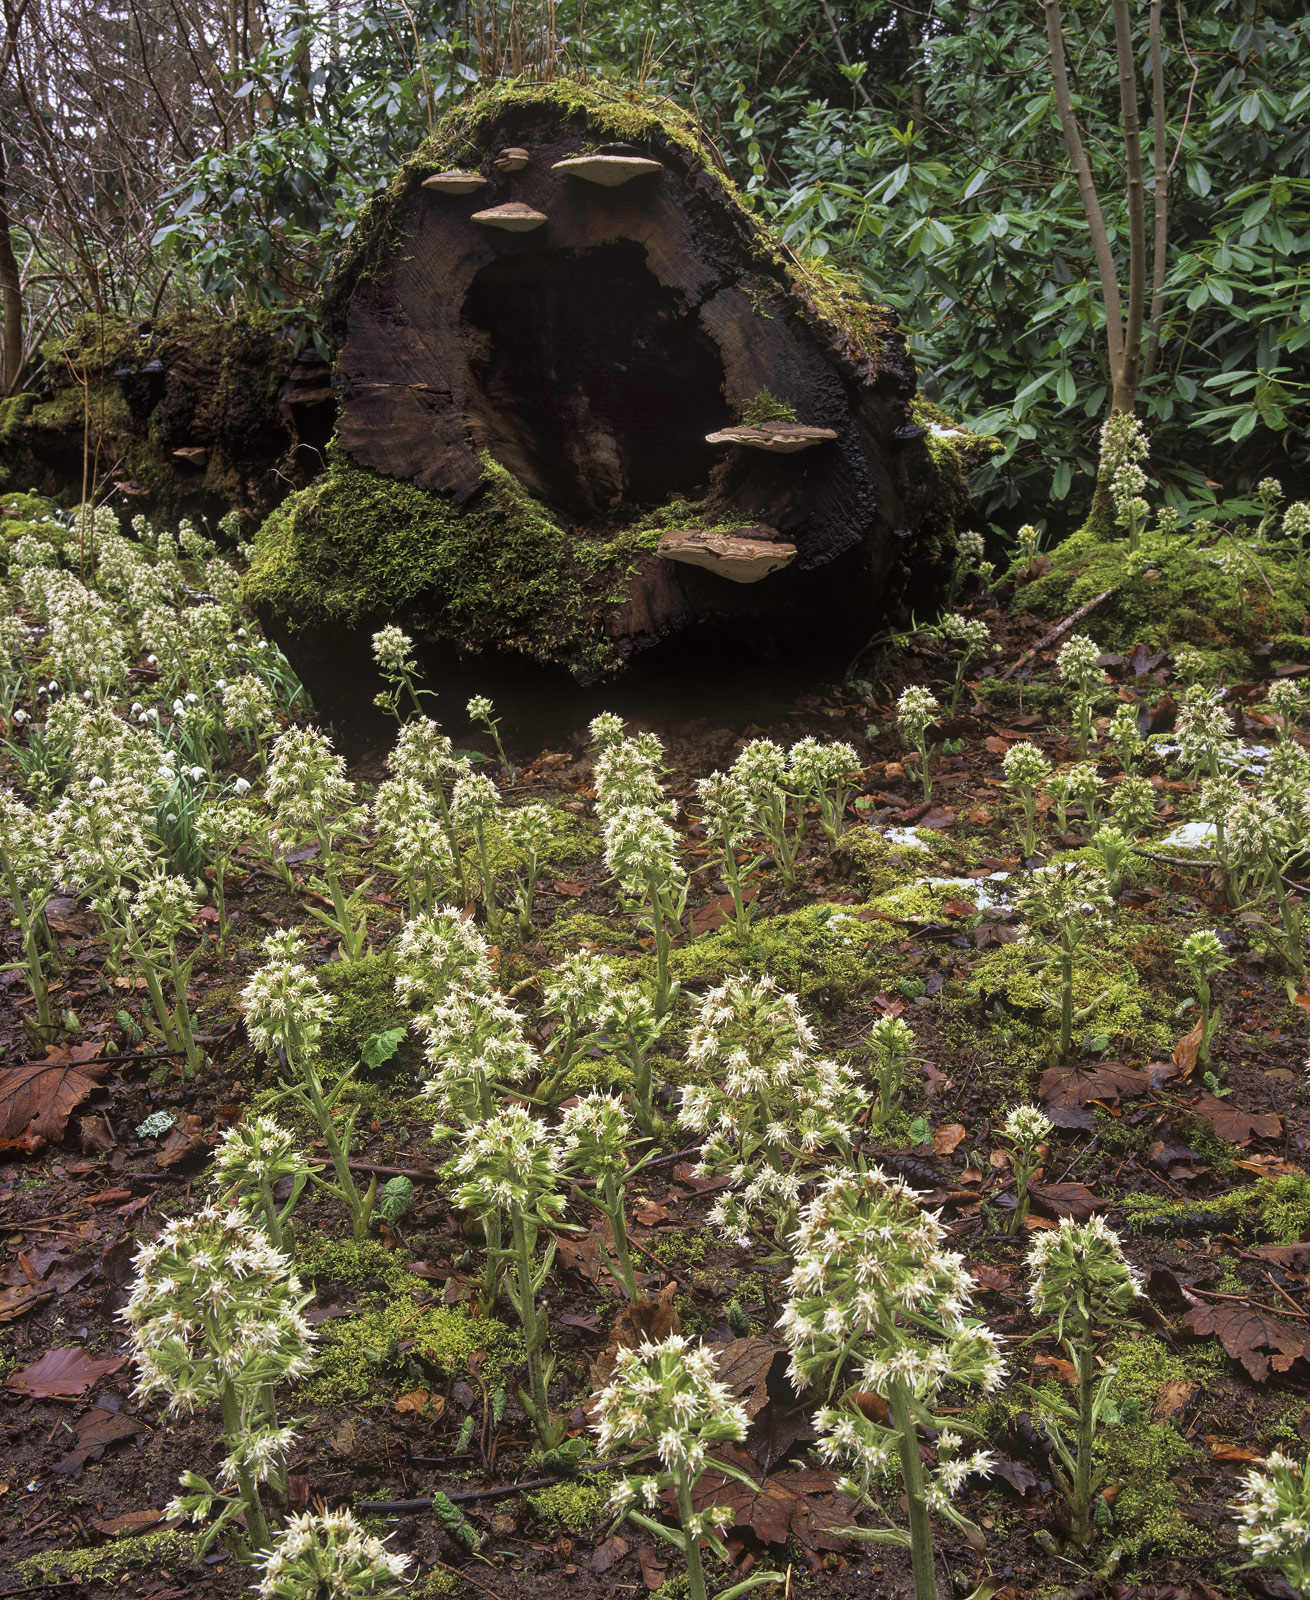 Garlic Mushrooms, Dallas Dhu, Moray, Scotland, wild, garlic, bracket fungi, snowdrops, spring, log, hollow, surreal, oas, photo